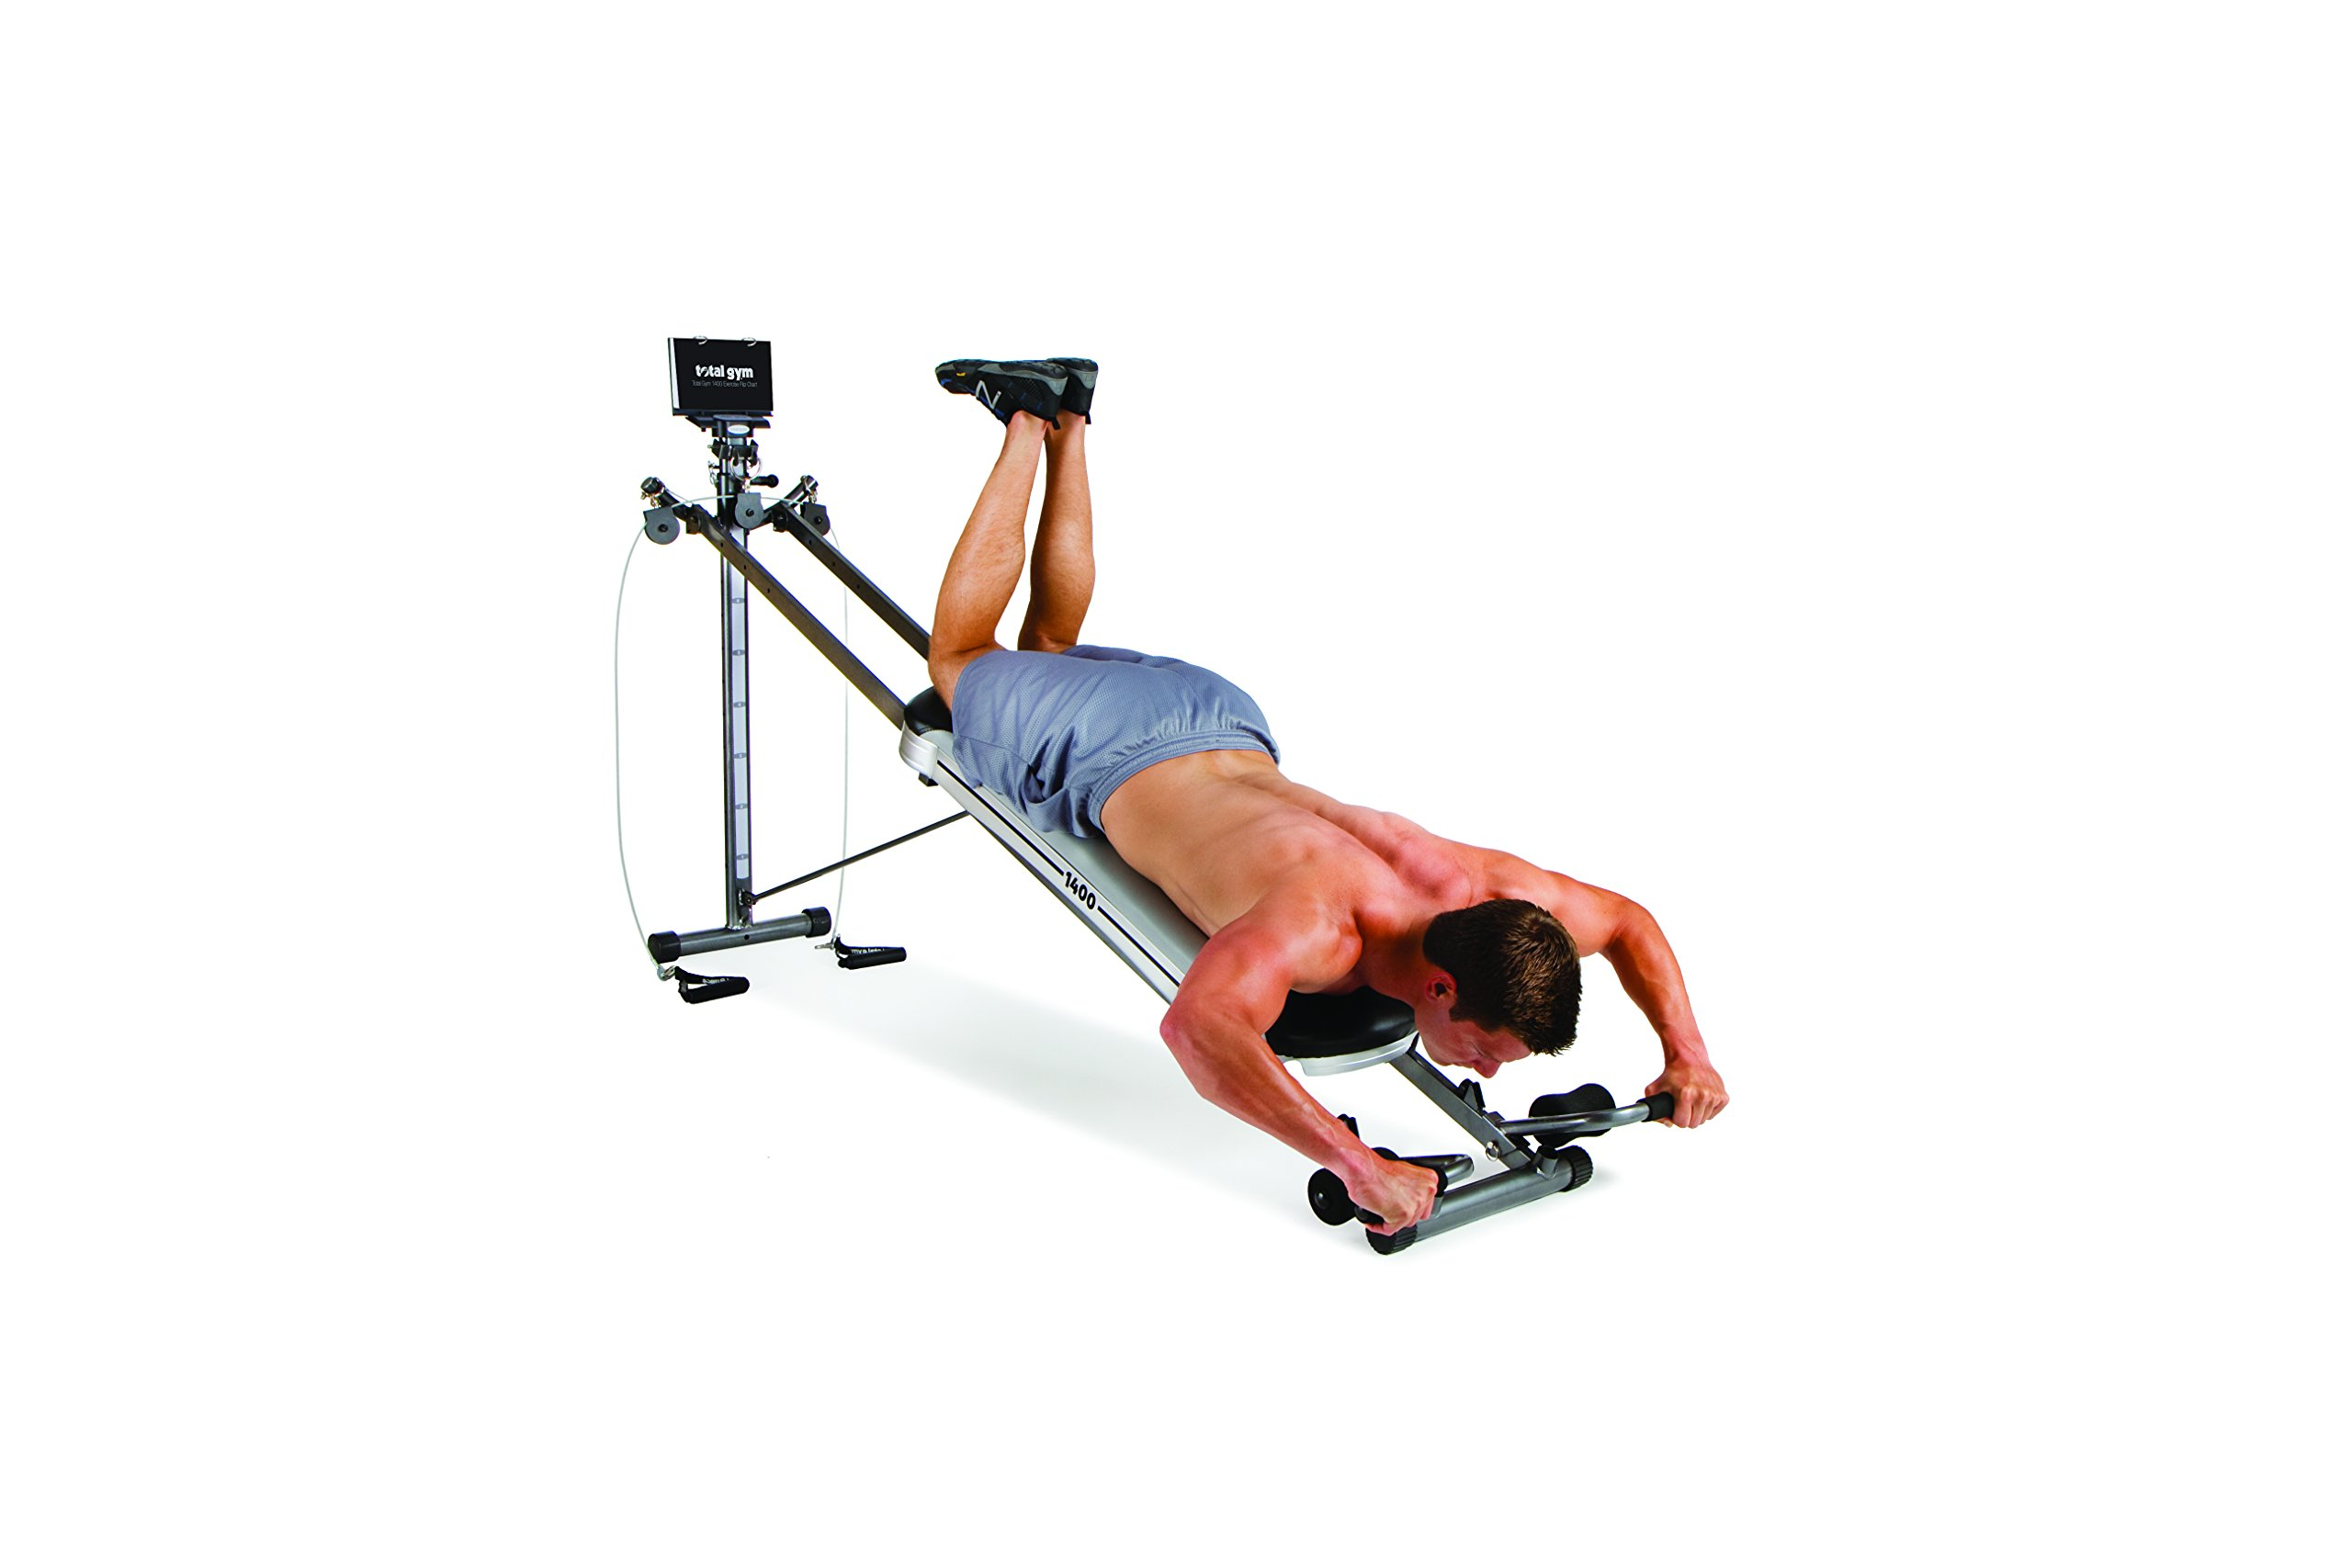 Total Gym 1400 Leg Exercise Machines by Total Gym (Image #3)